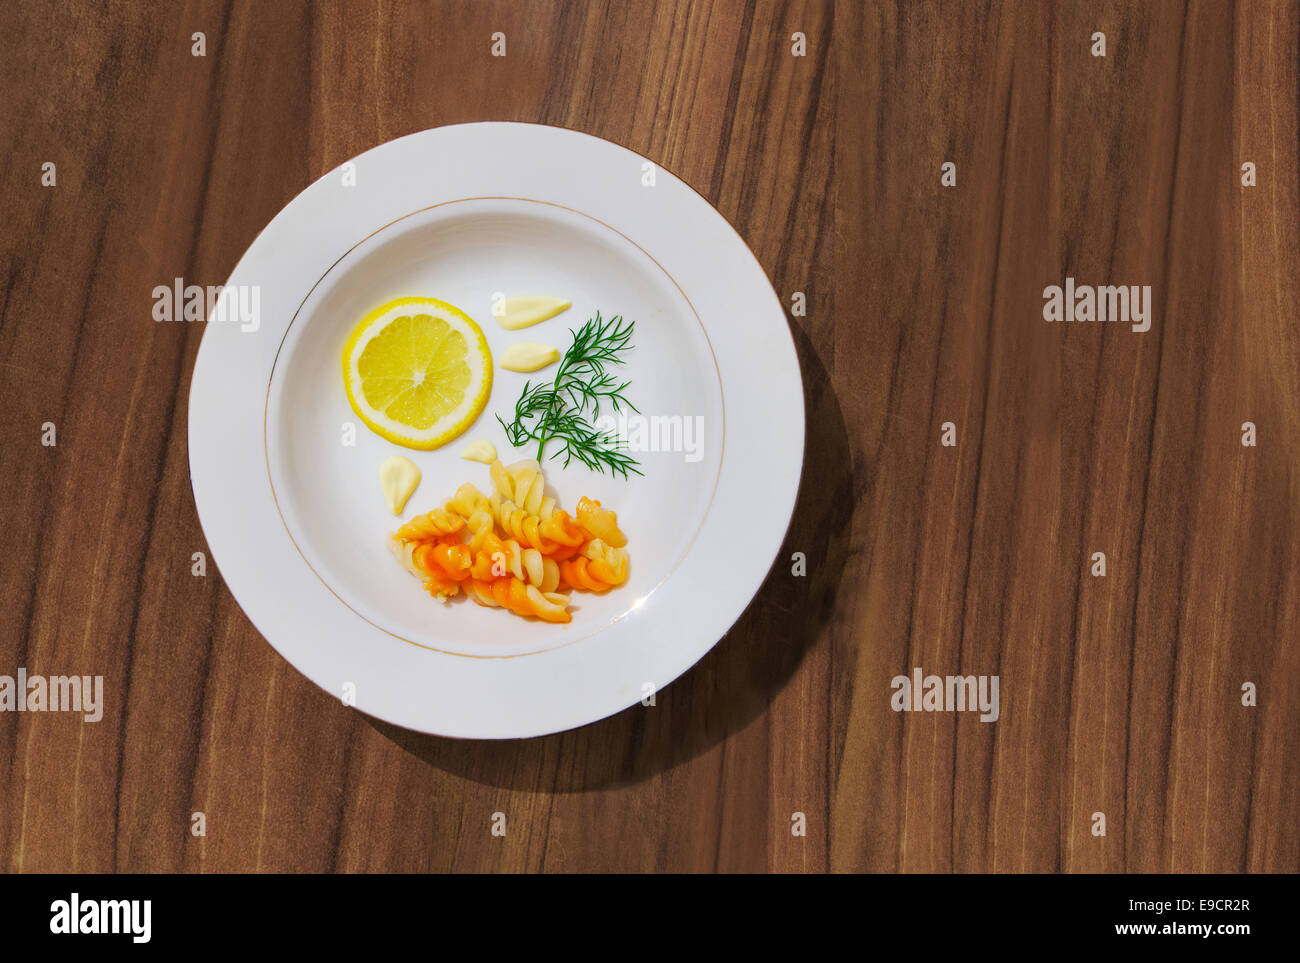 Composition With Lemon Dill Mayonnaise Pasta On A White Plate The Table